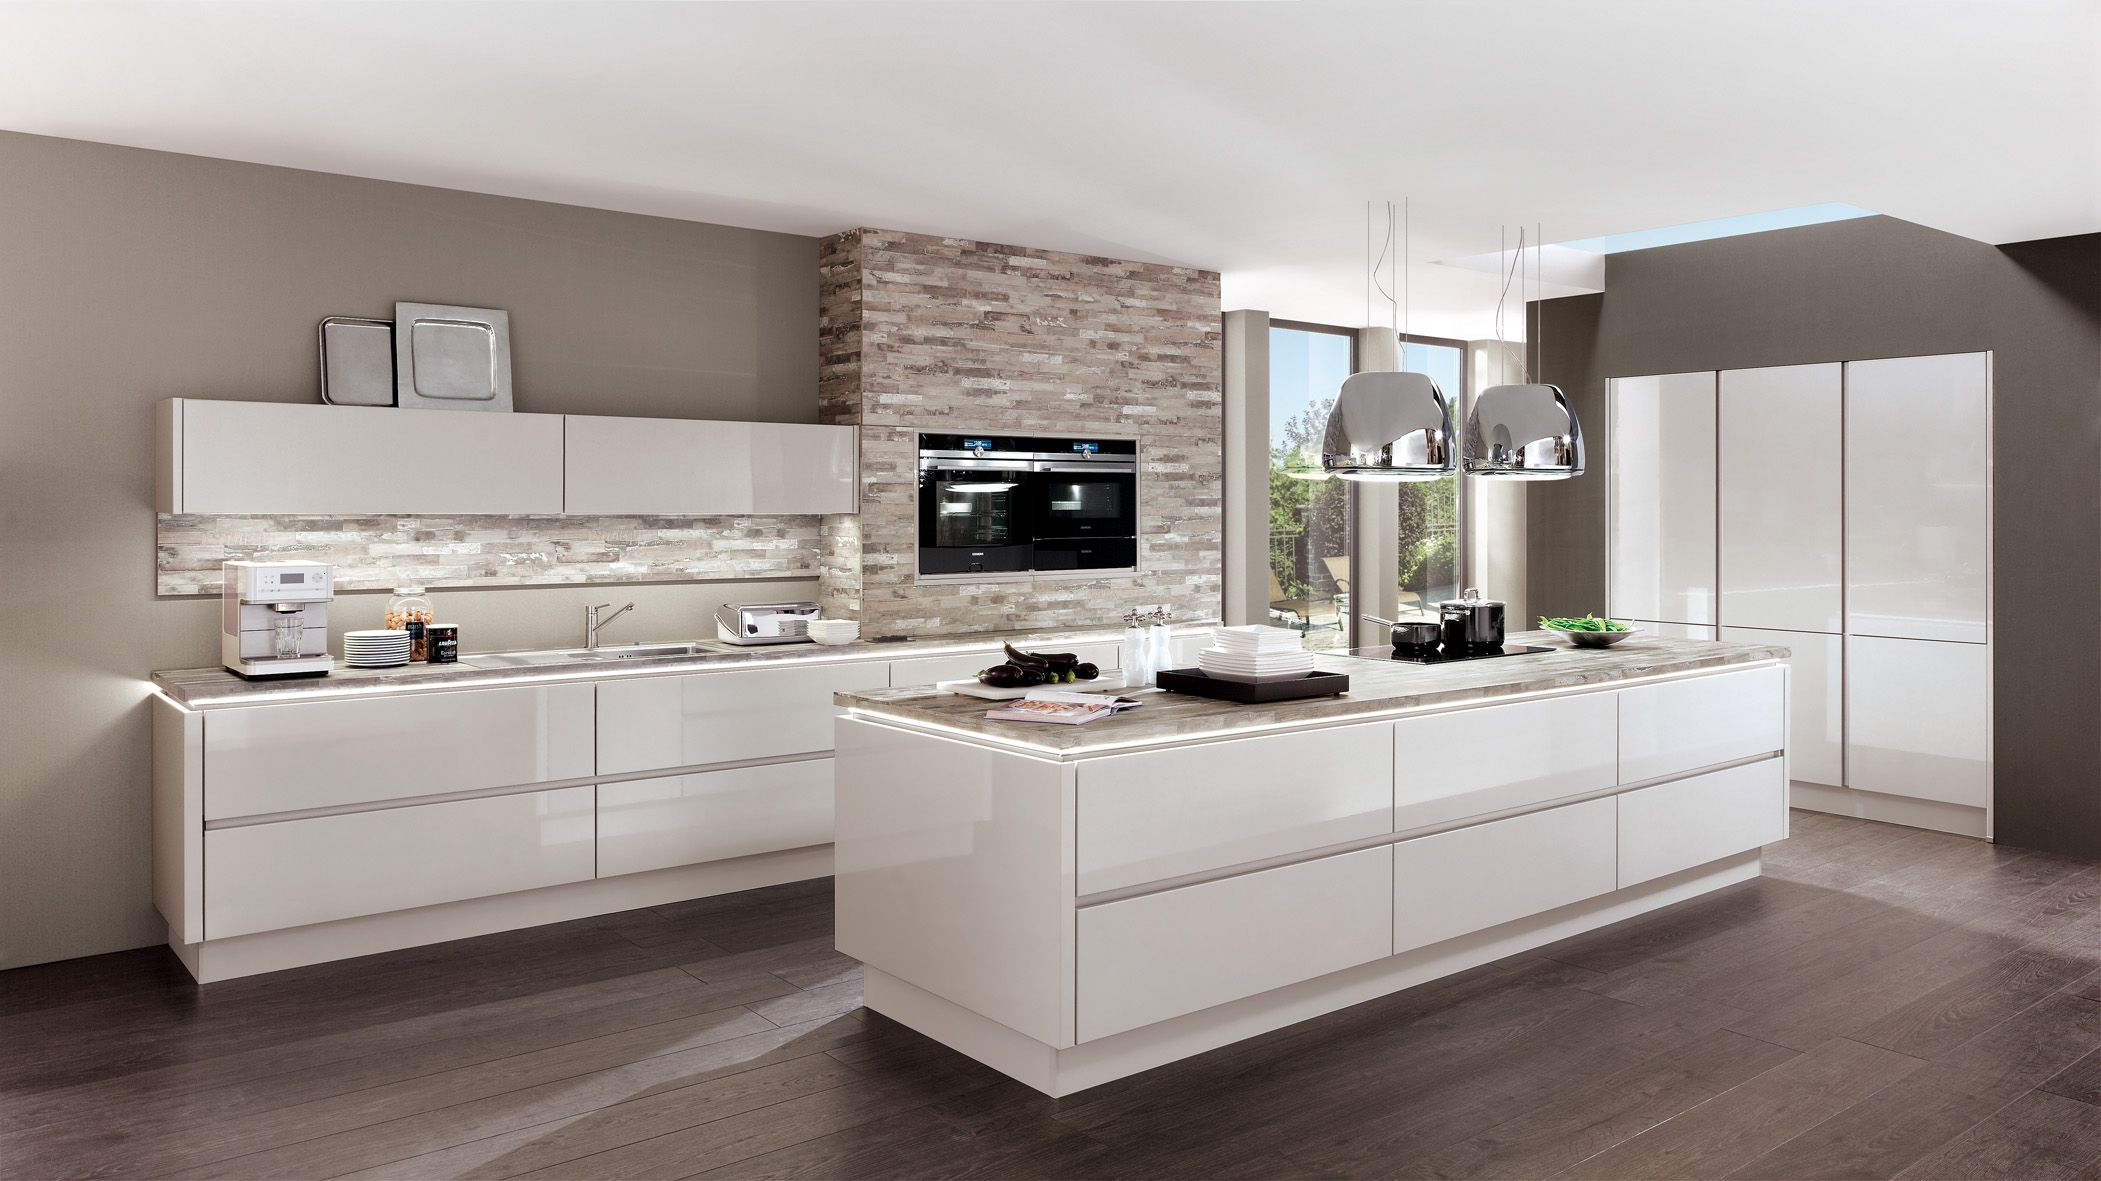 The ultimate in high gloss lacquer finishes the LUX kitchen is sure